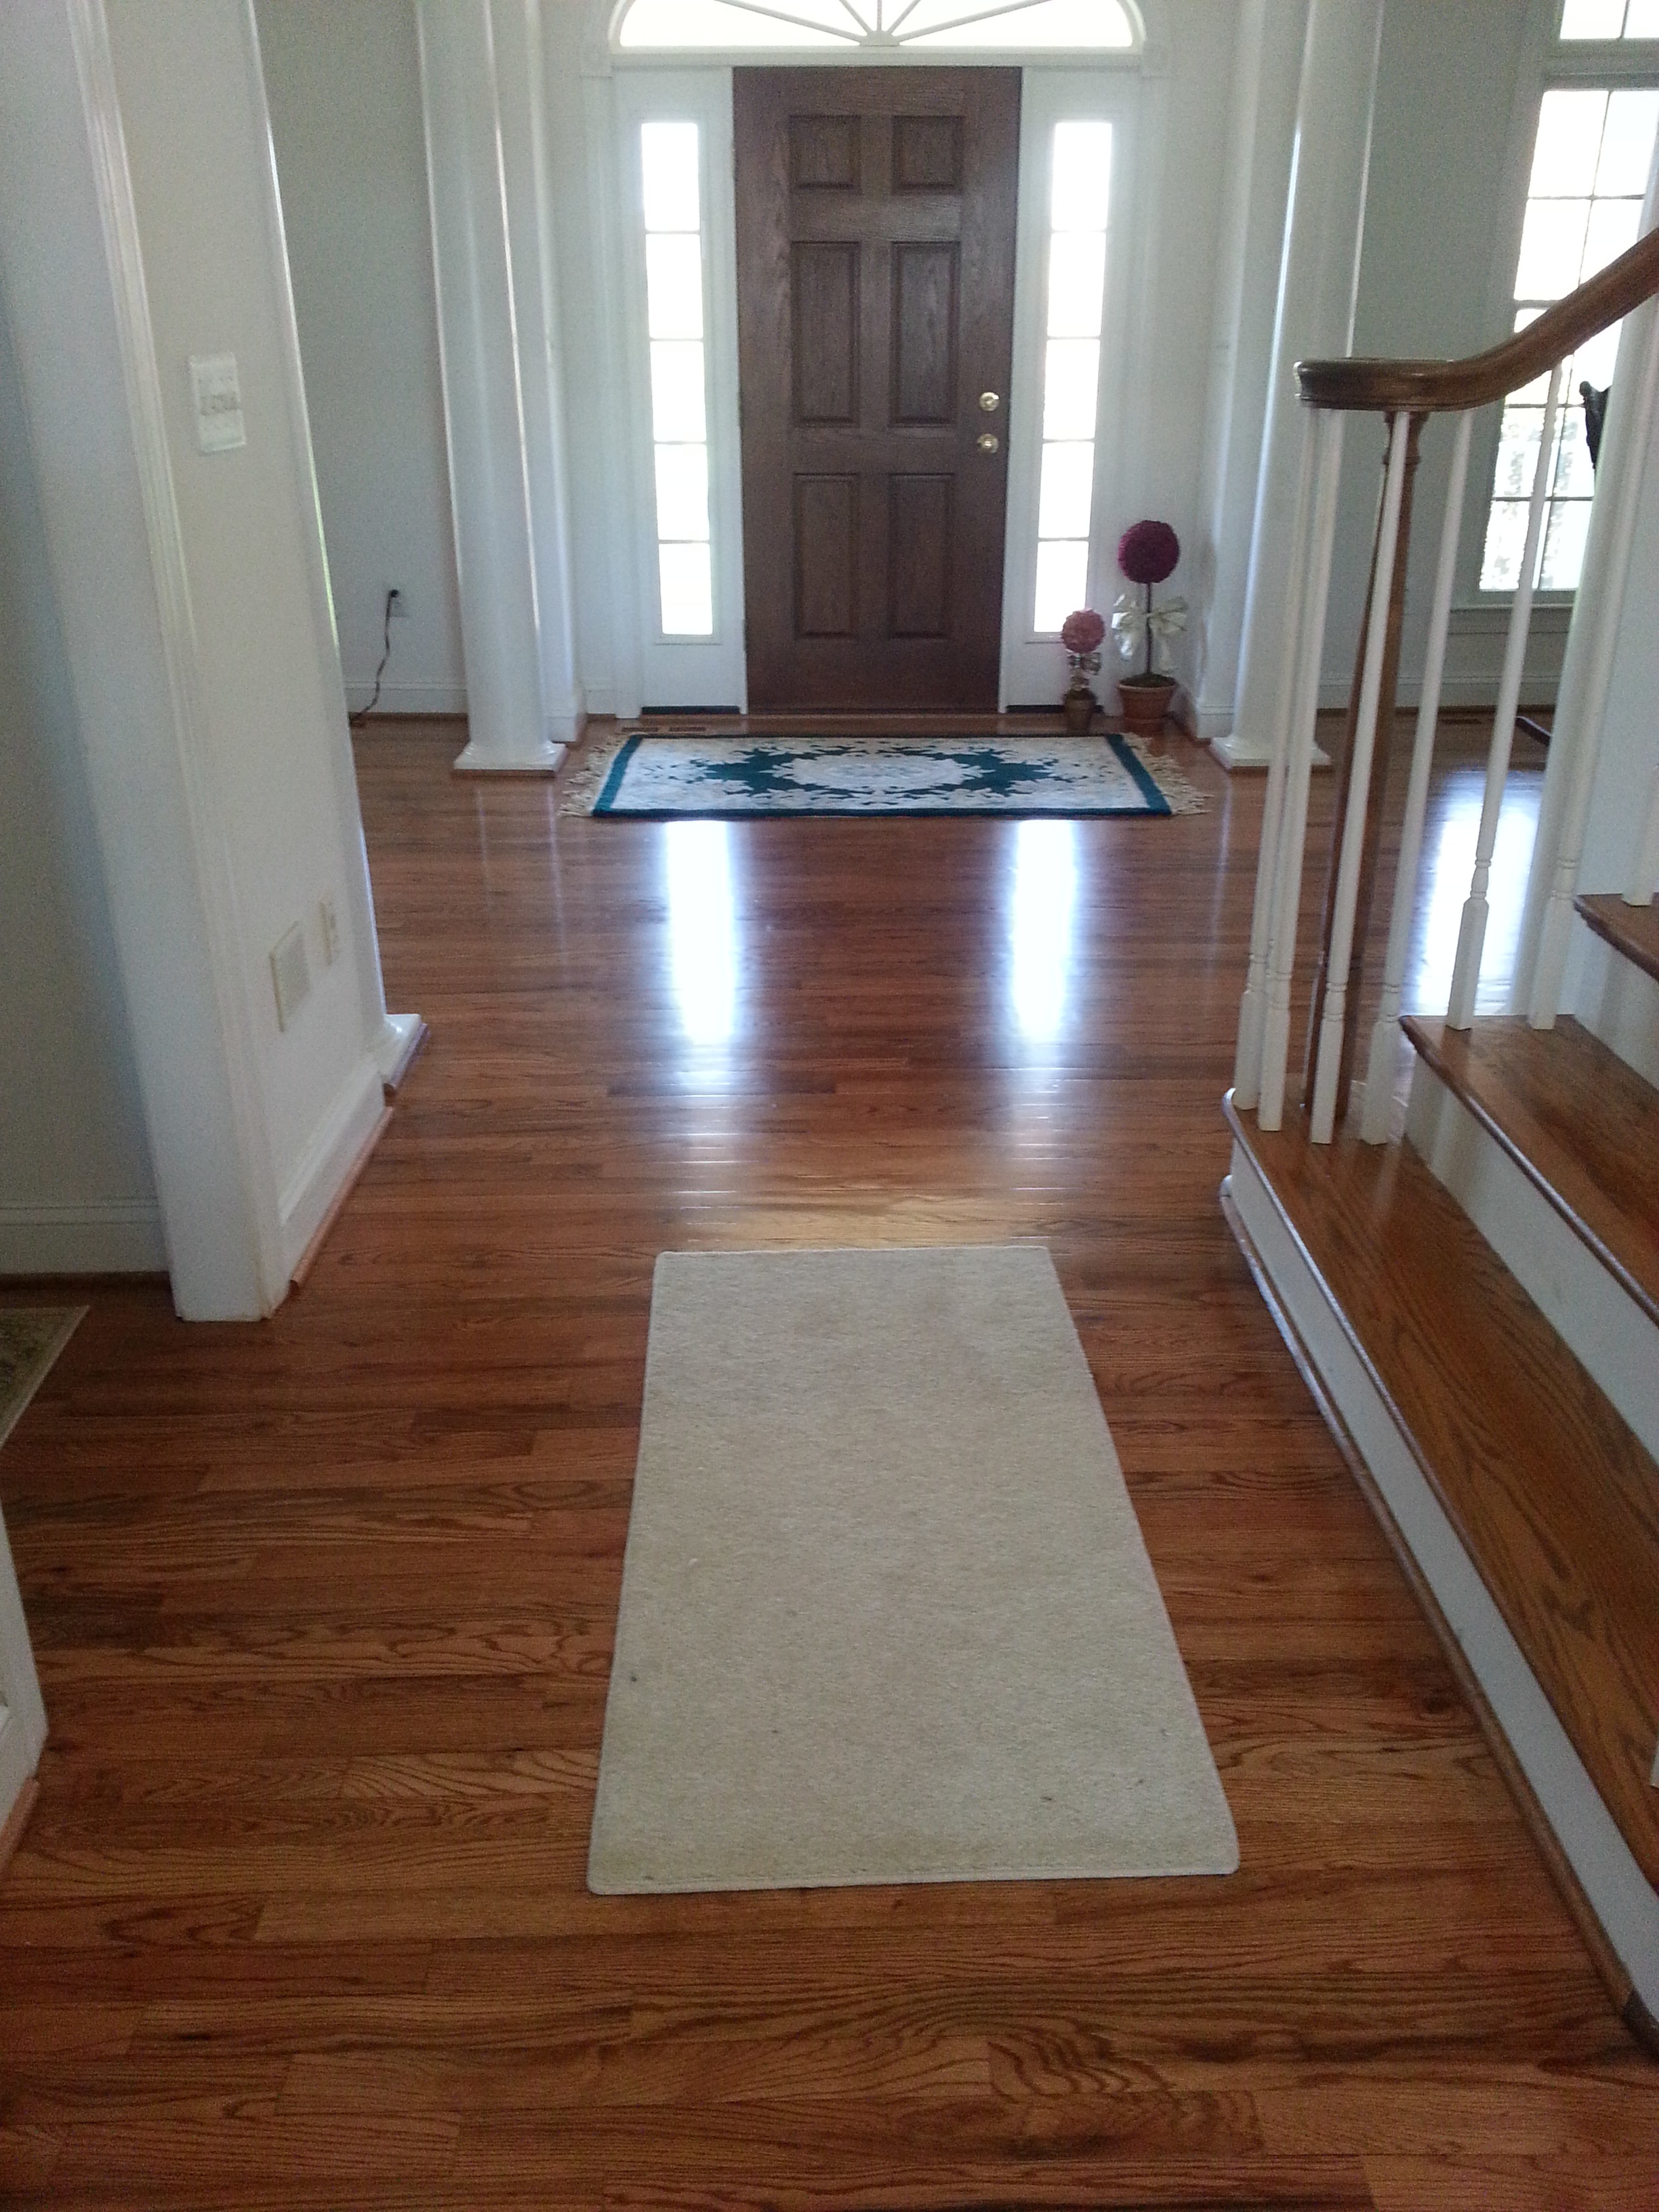 Floorgem services inc columbia md business profile for Flooring company columbia md